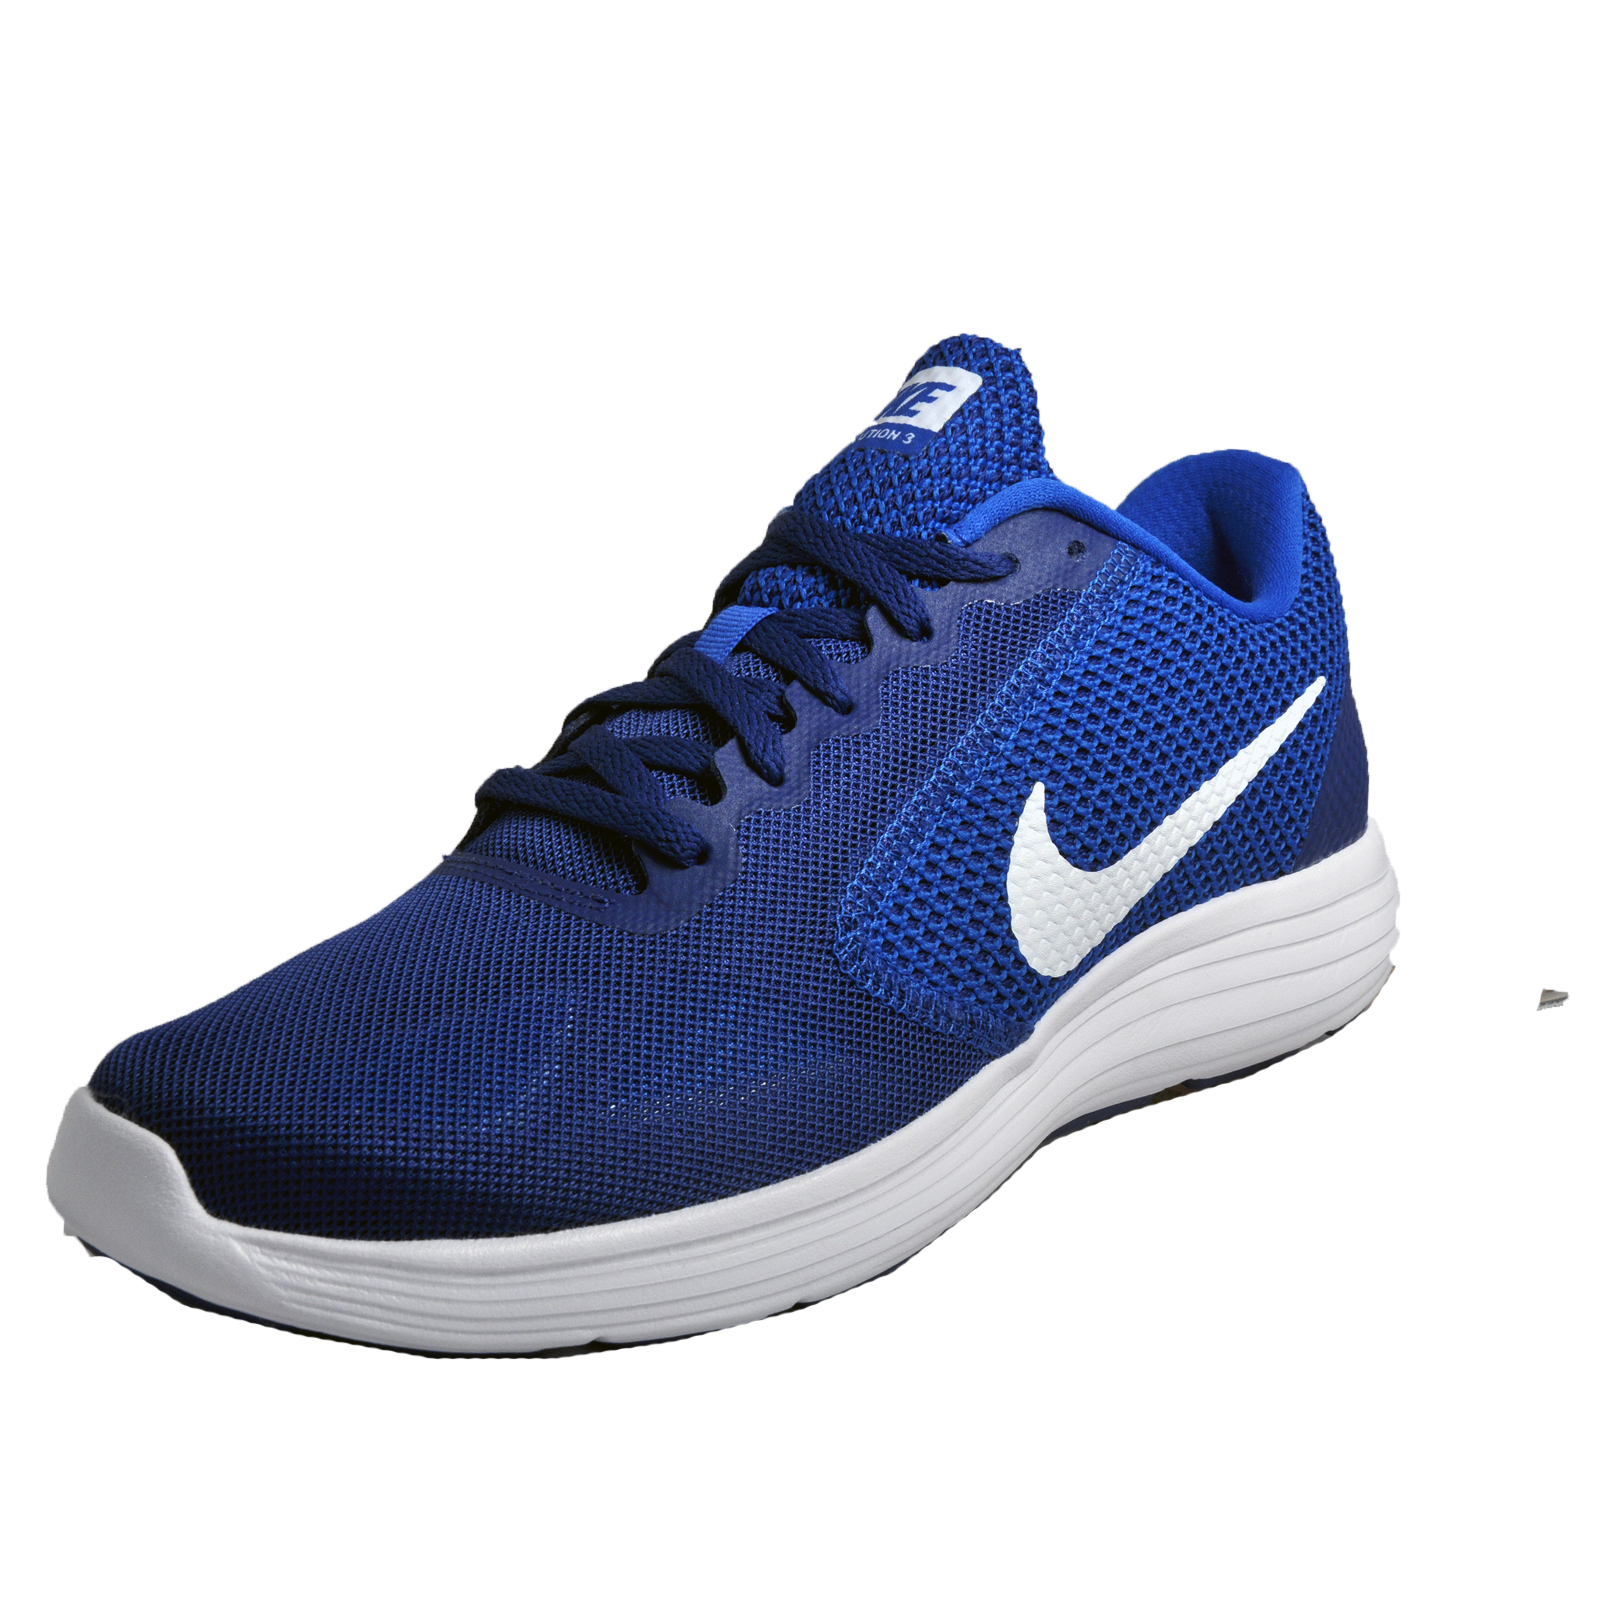 half off f01c0 ff975 Details about Nike Revolution 3 Mens Running Shoes Fitness Gym Trainers Blue